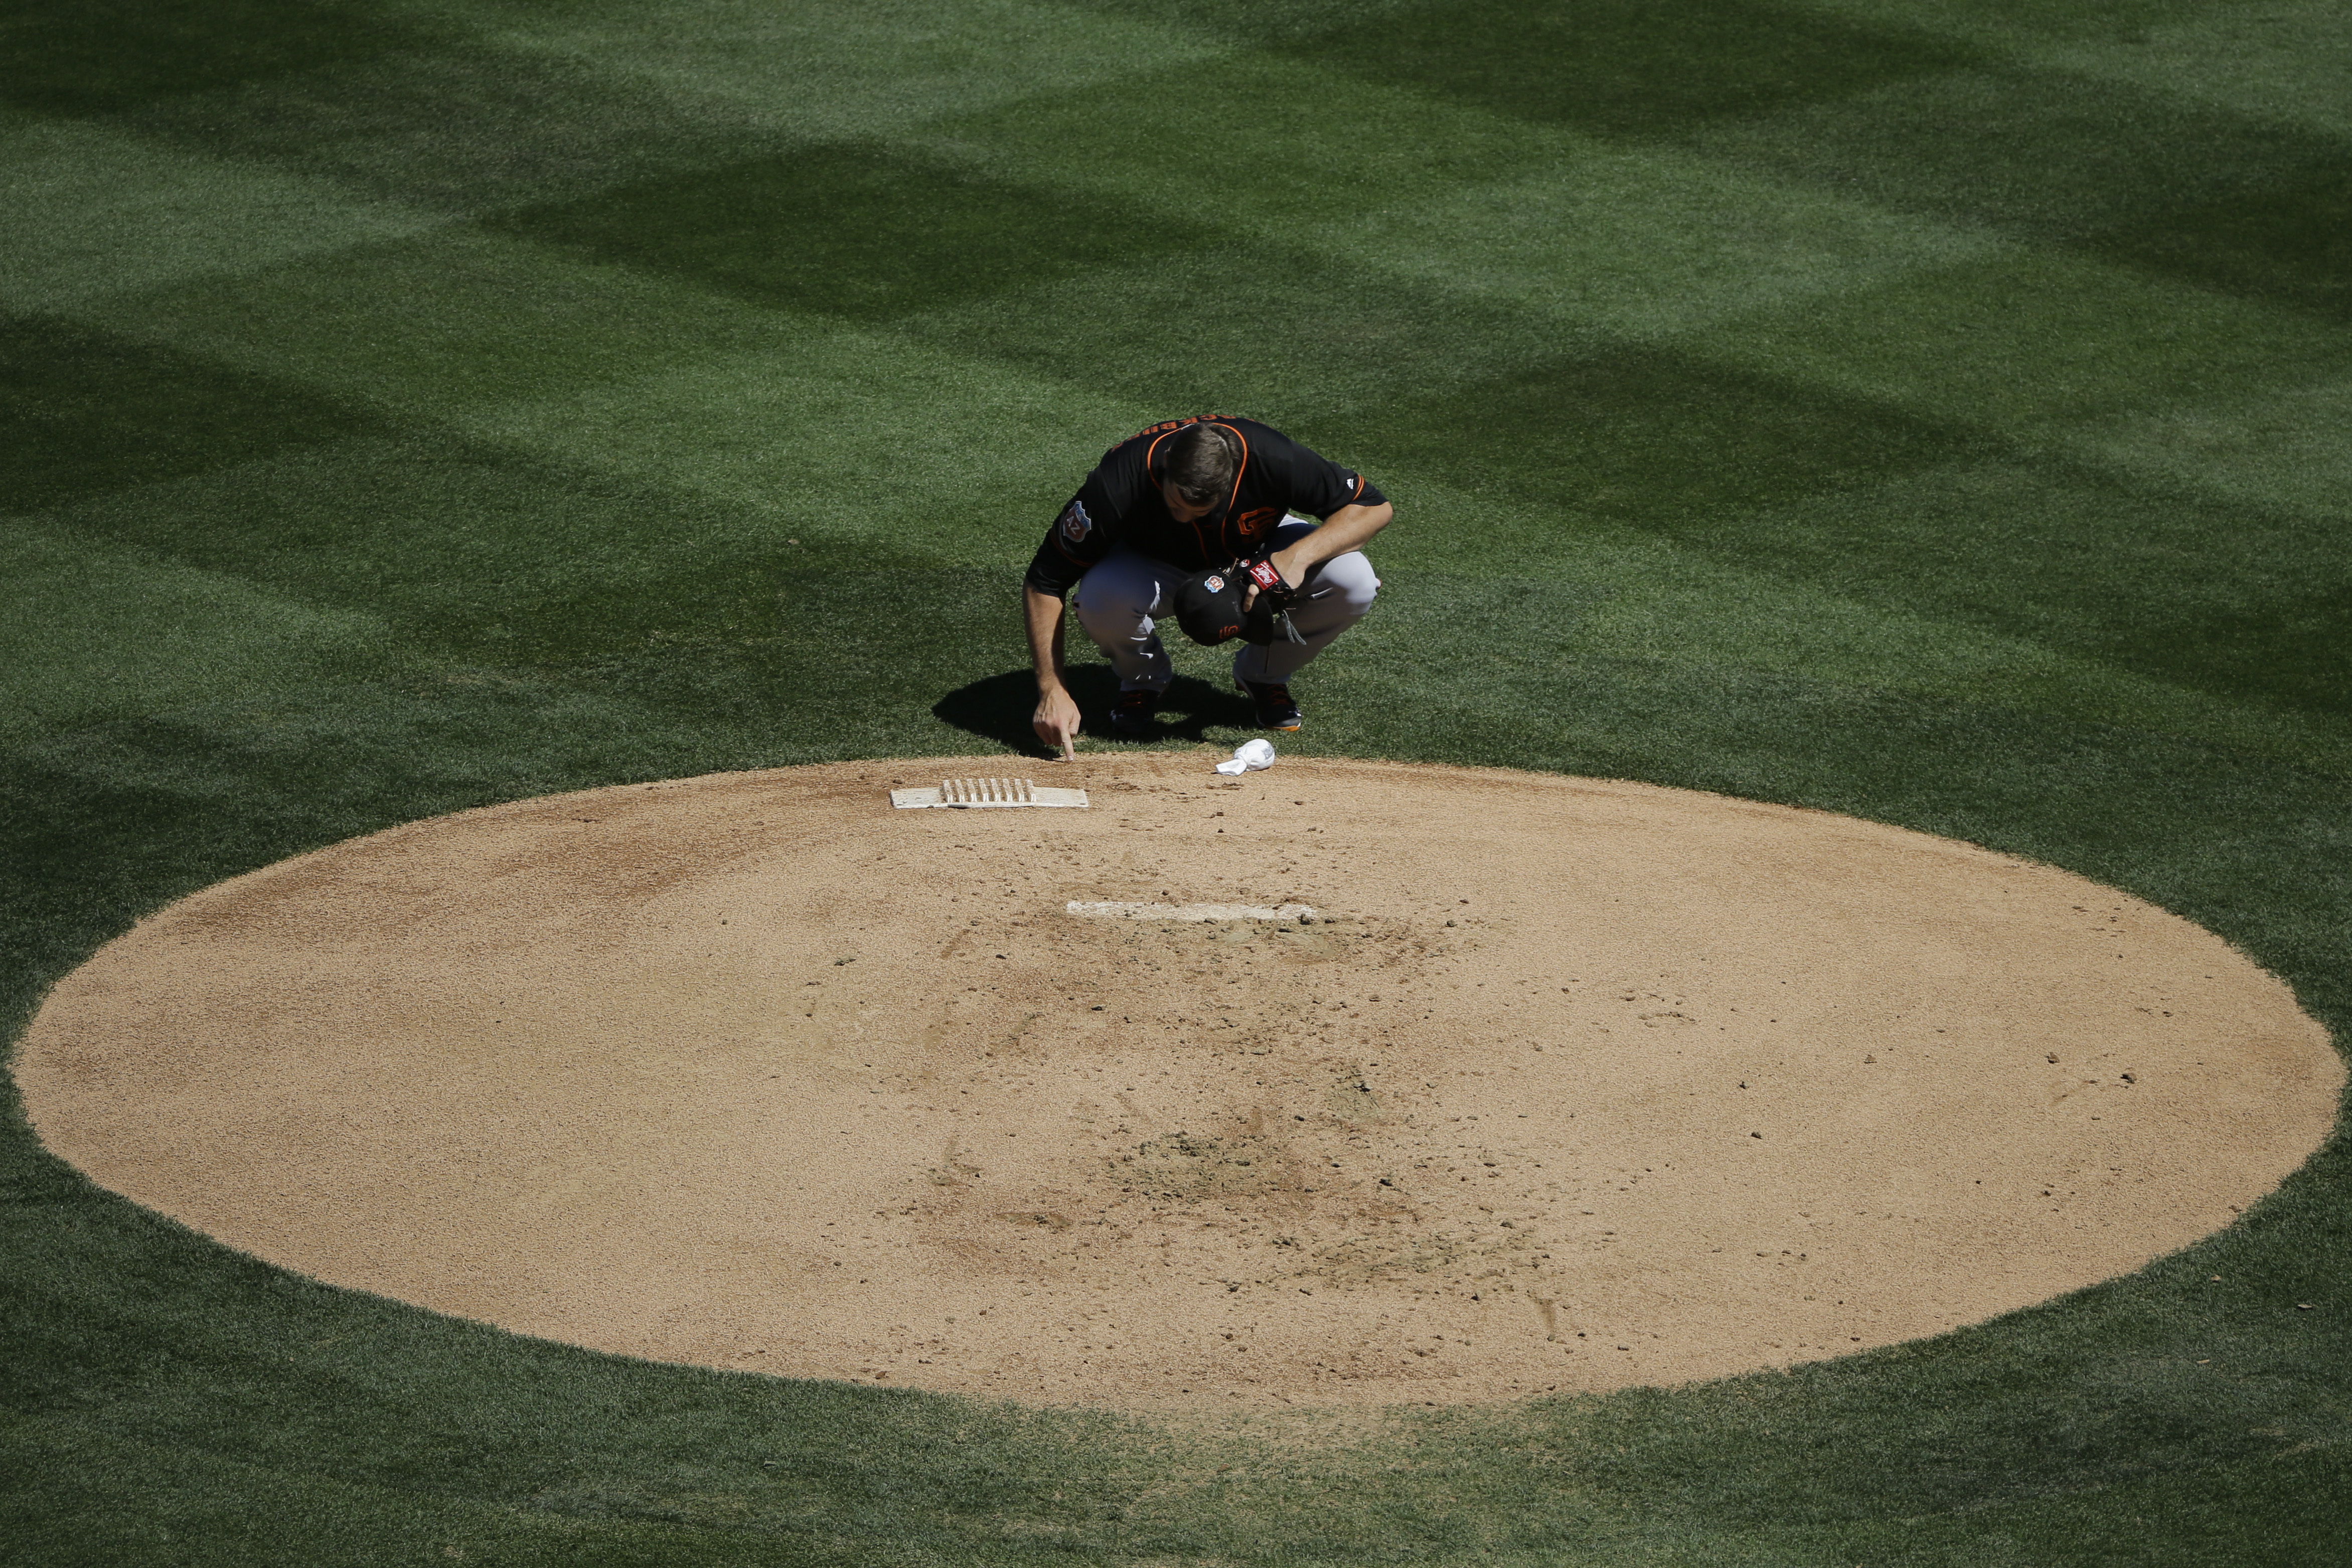 San Francisco Giants starting pitcher Clayton Blackburn writes on the mound before pitching against the Colorado Rockies at the start of the first inning of a spring training baseball game Sunday, March 20, 2016, in Scottsdale, Ariz. (AP Photo/Jae C. Hong